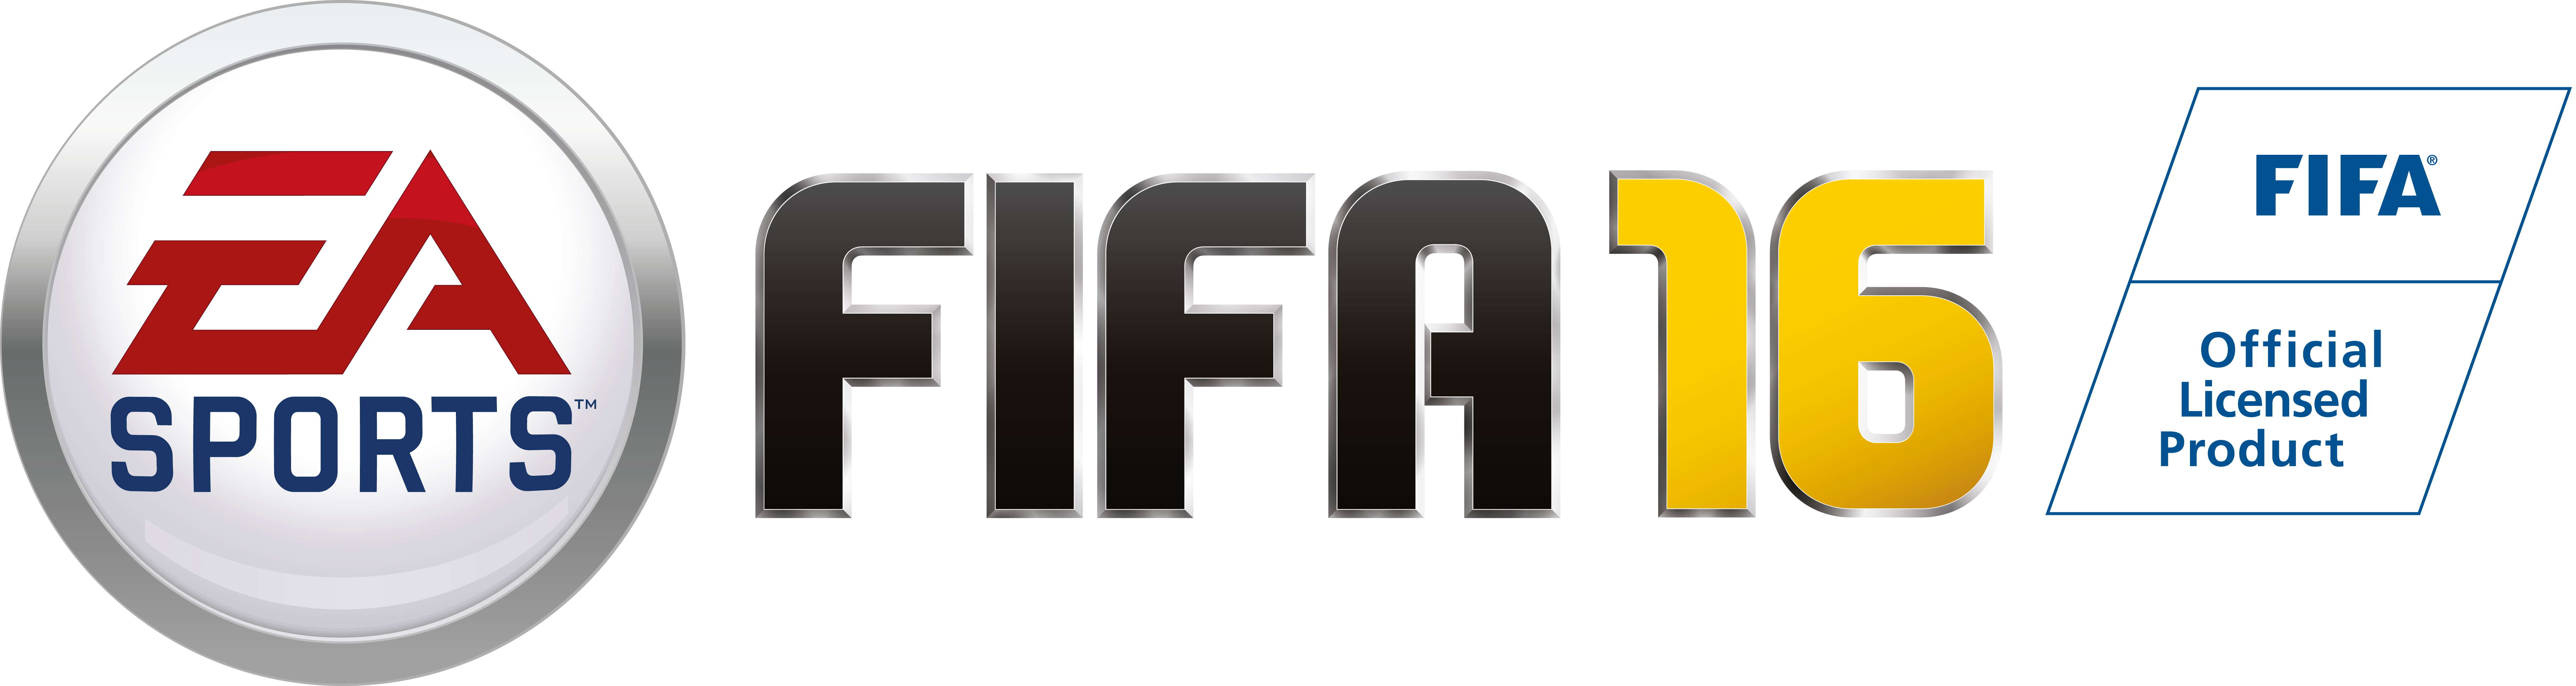 uploads fifa game fifa game PNG31 24